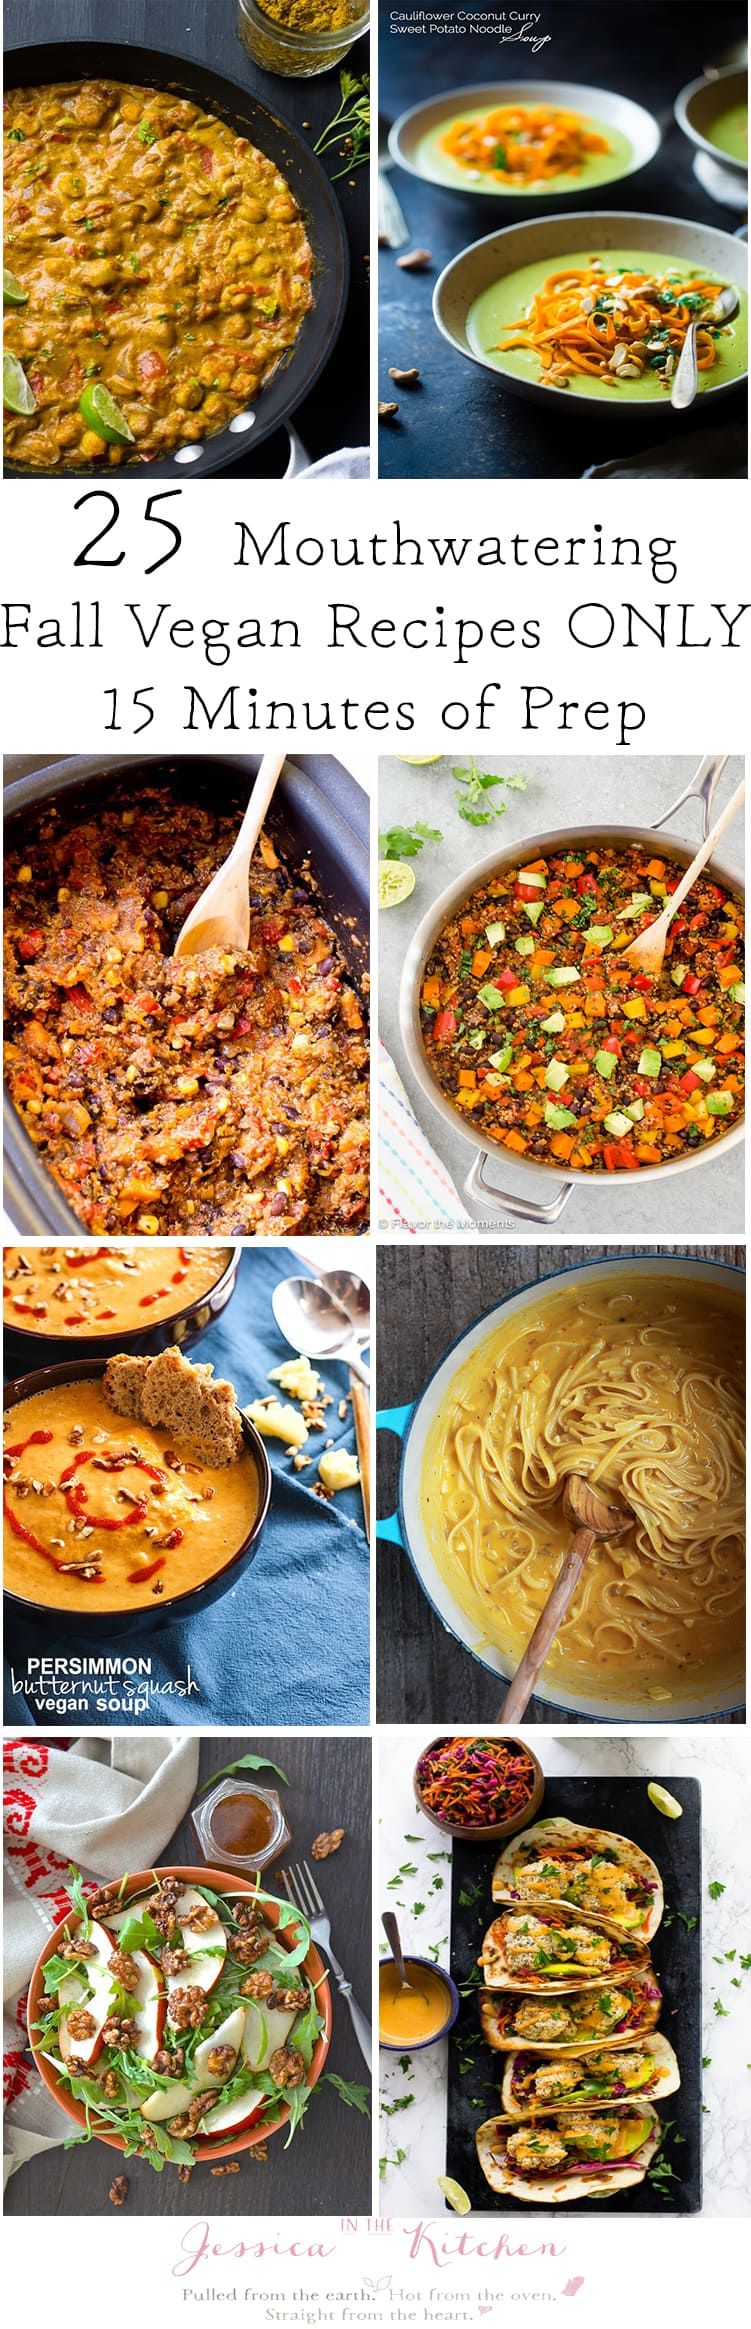 A montage of fall vegan dishes with title graphics.